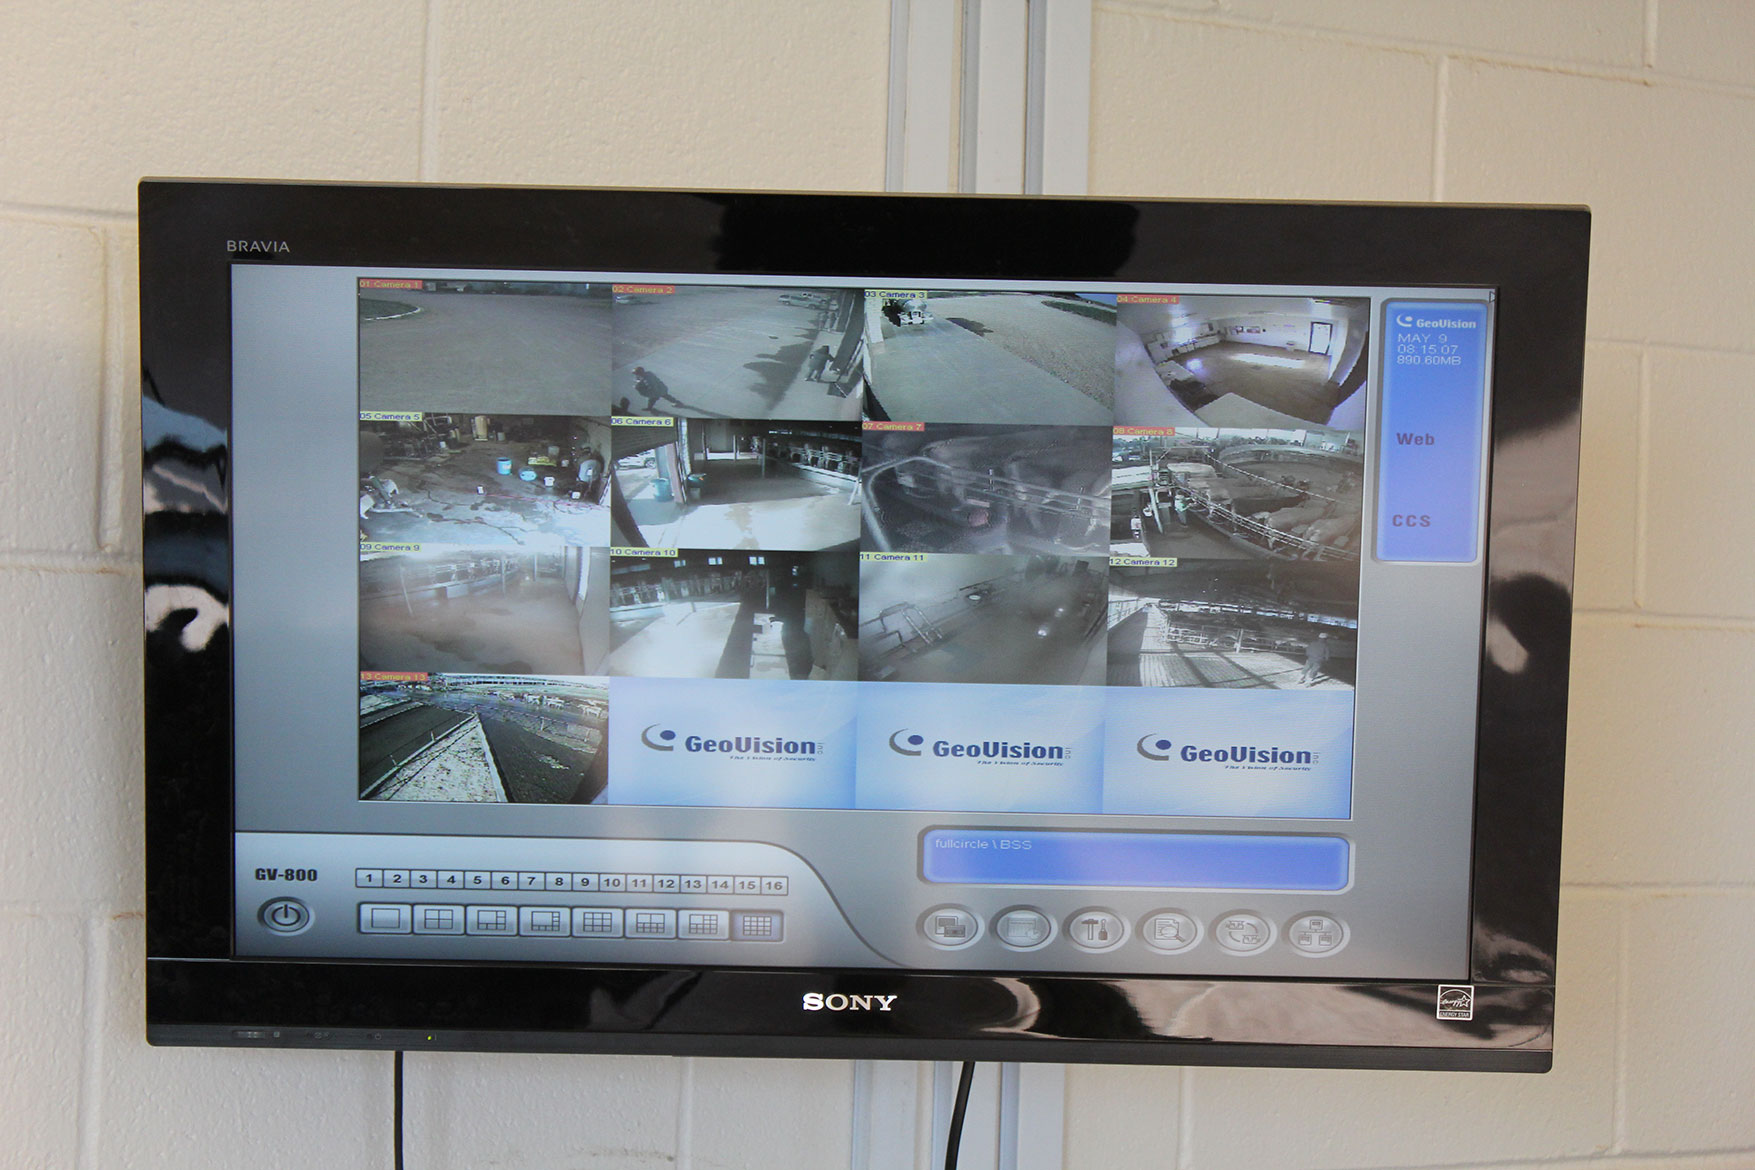 Cameras monitor various places at the dairy farm to ensure security of animals and people.